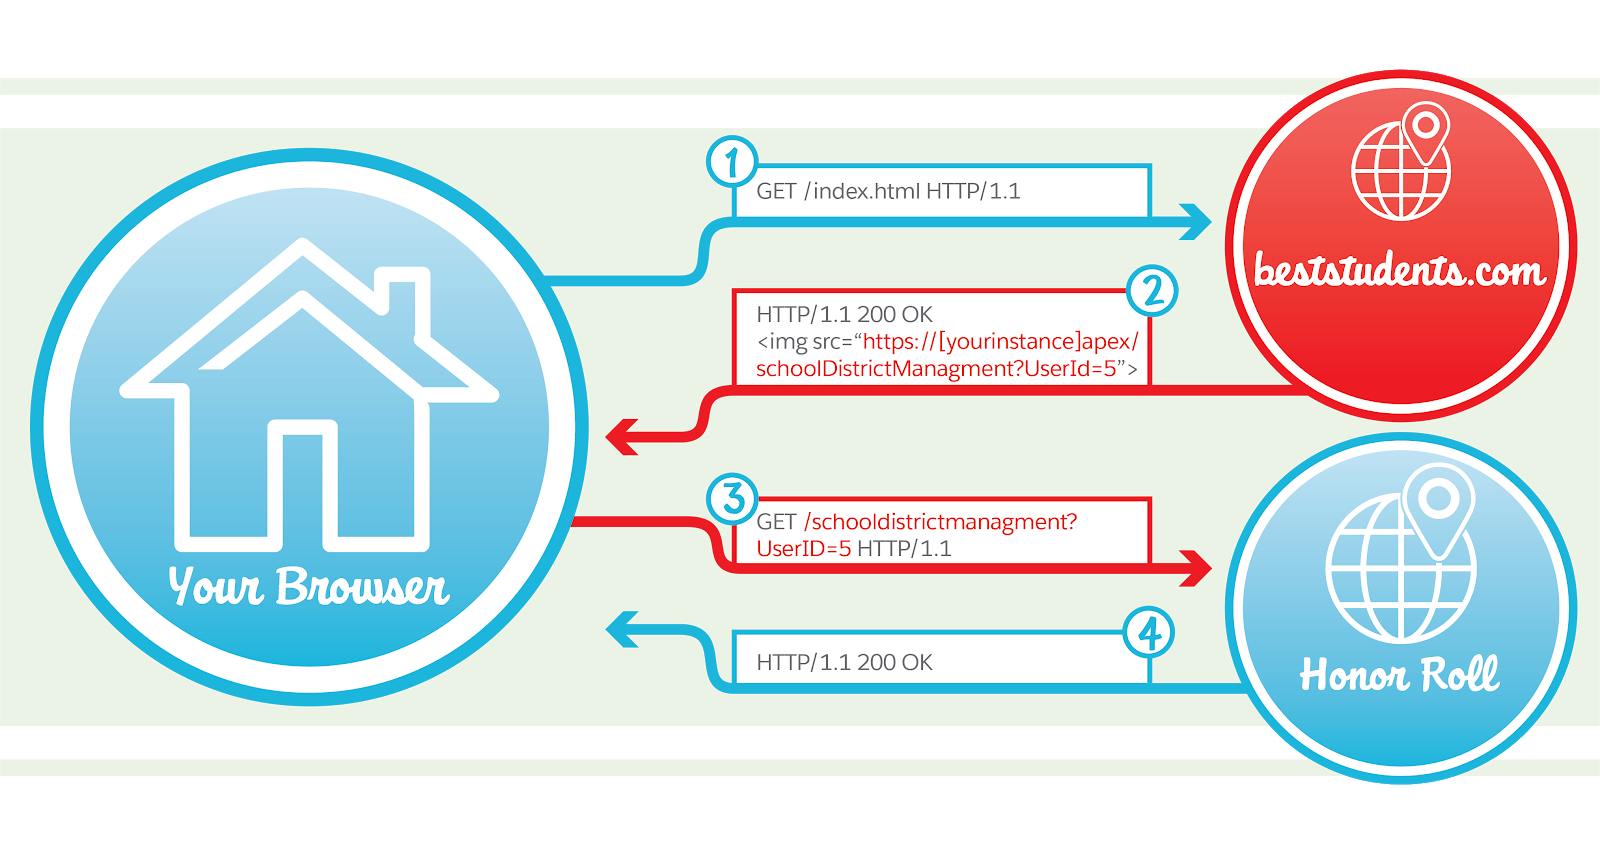 Diagram showing how a CSRF attack occurs by redirecting the browser to a malicious site.